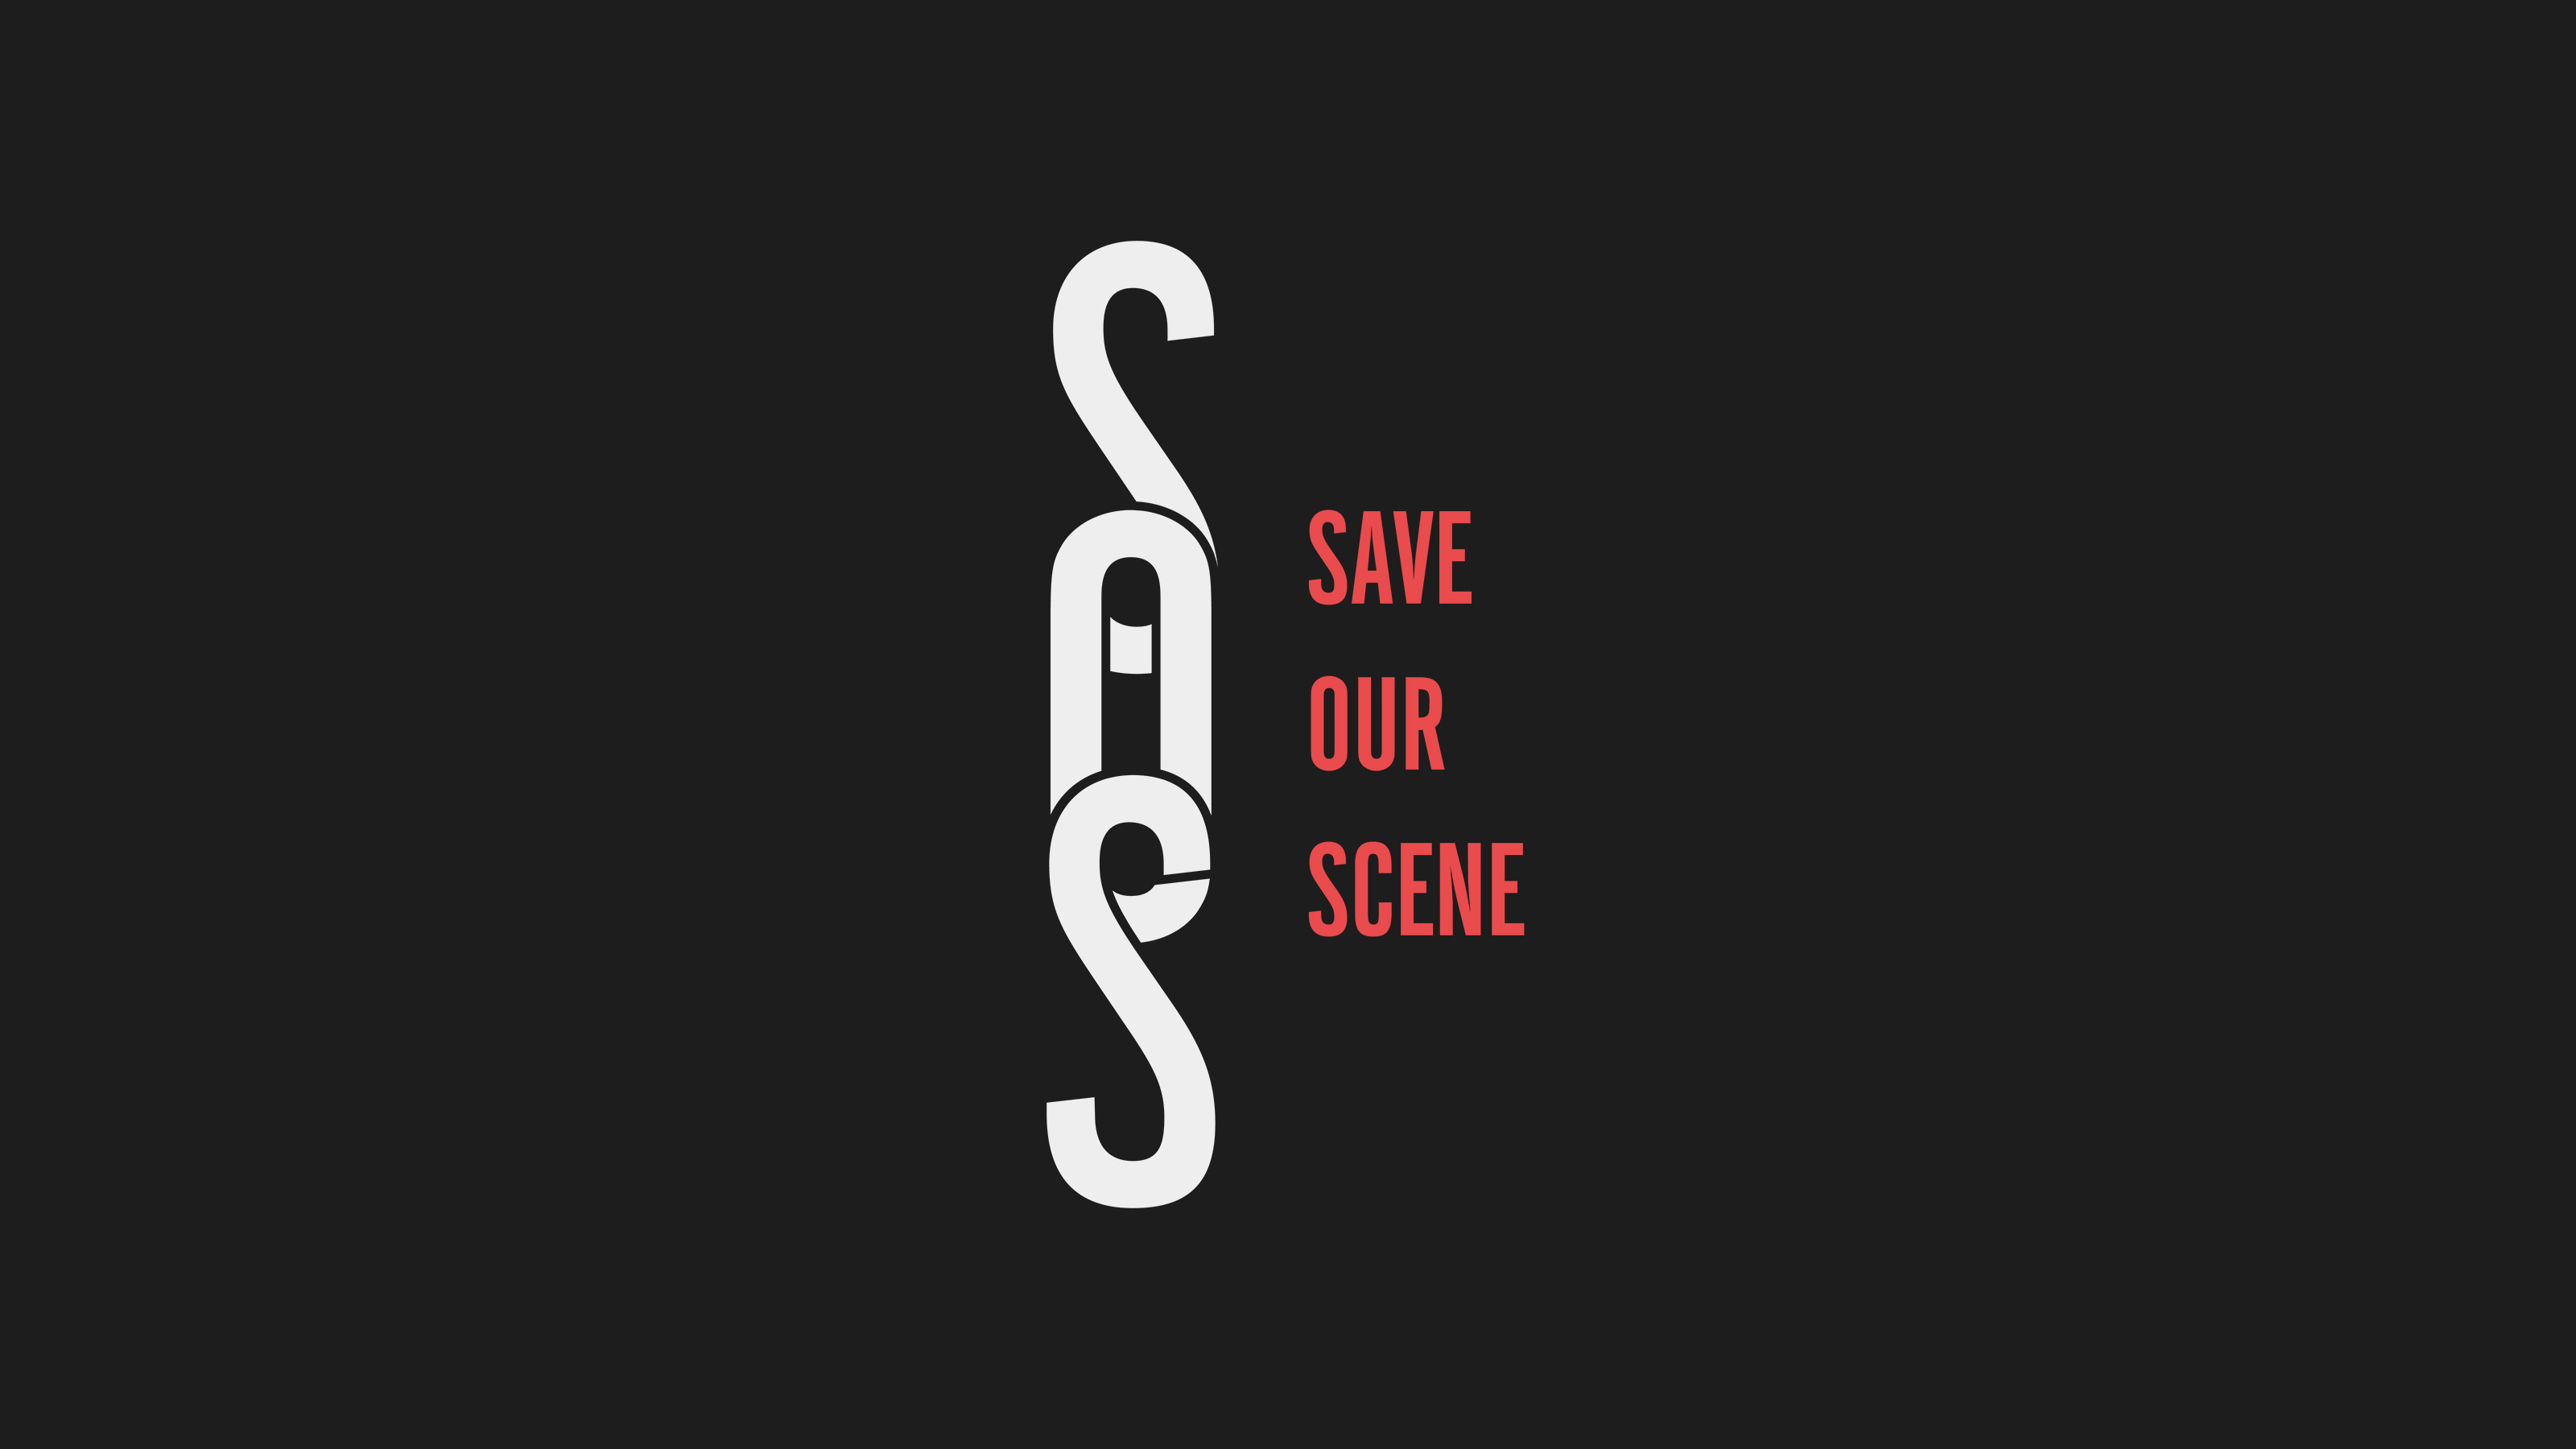 Save Our Scene